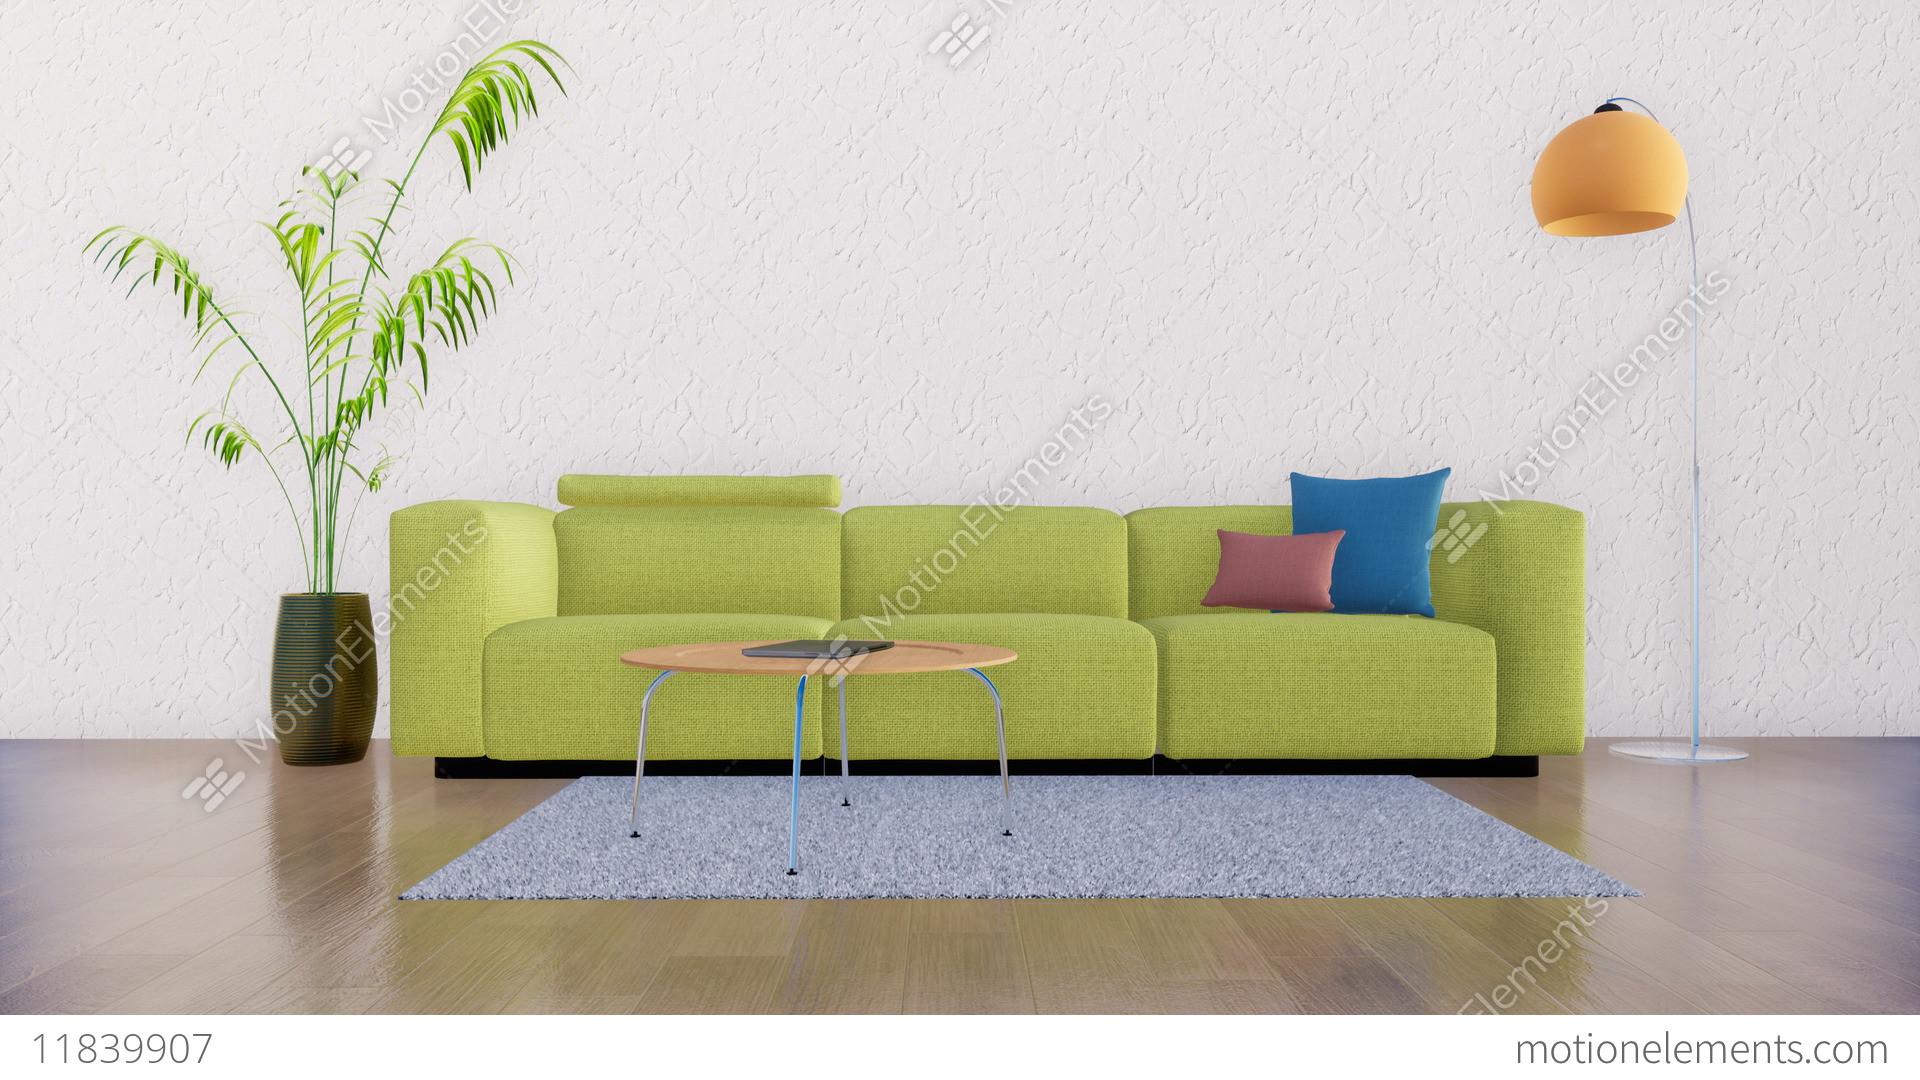 Minimalist Living Space Minimalist Living Room Interior With Copy Space 3d Stock Video Footage